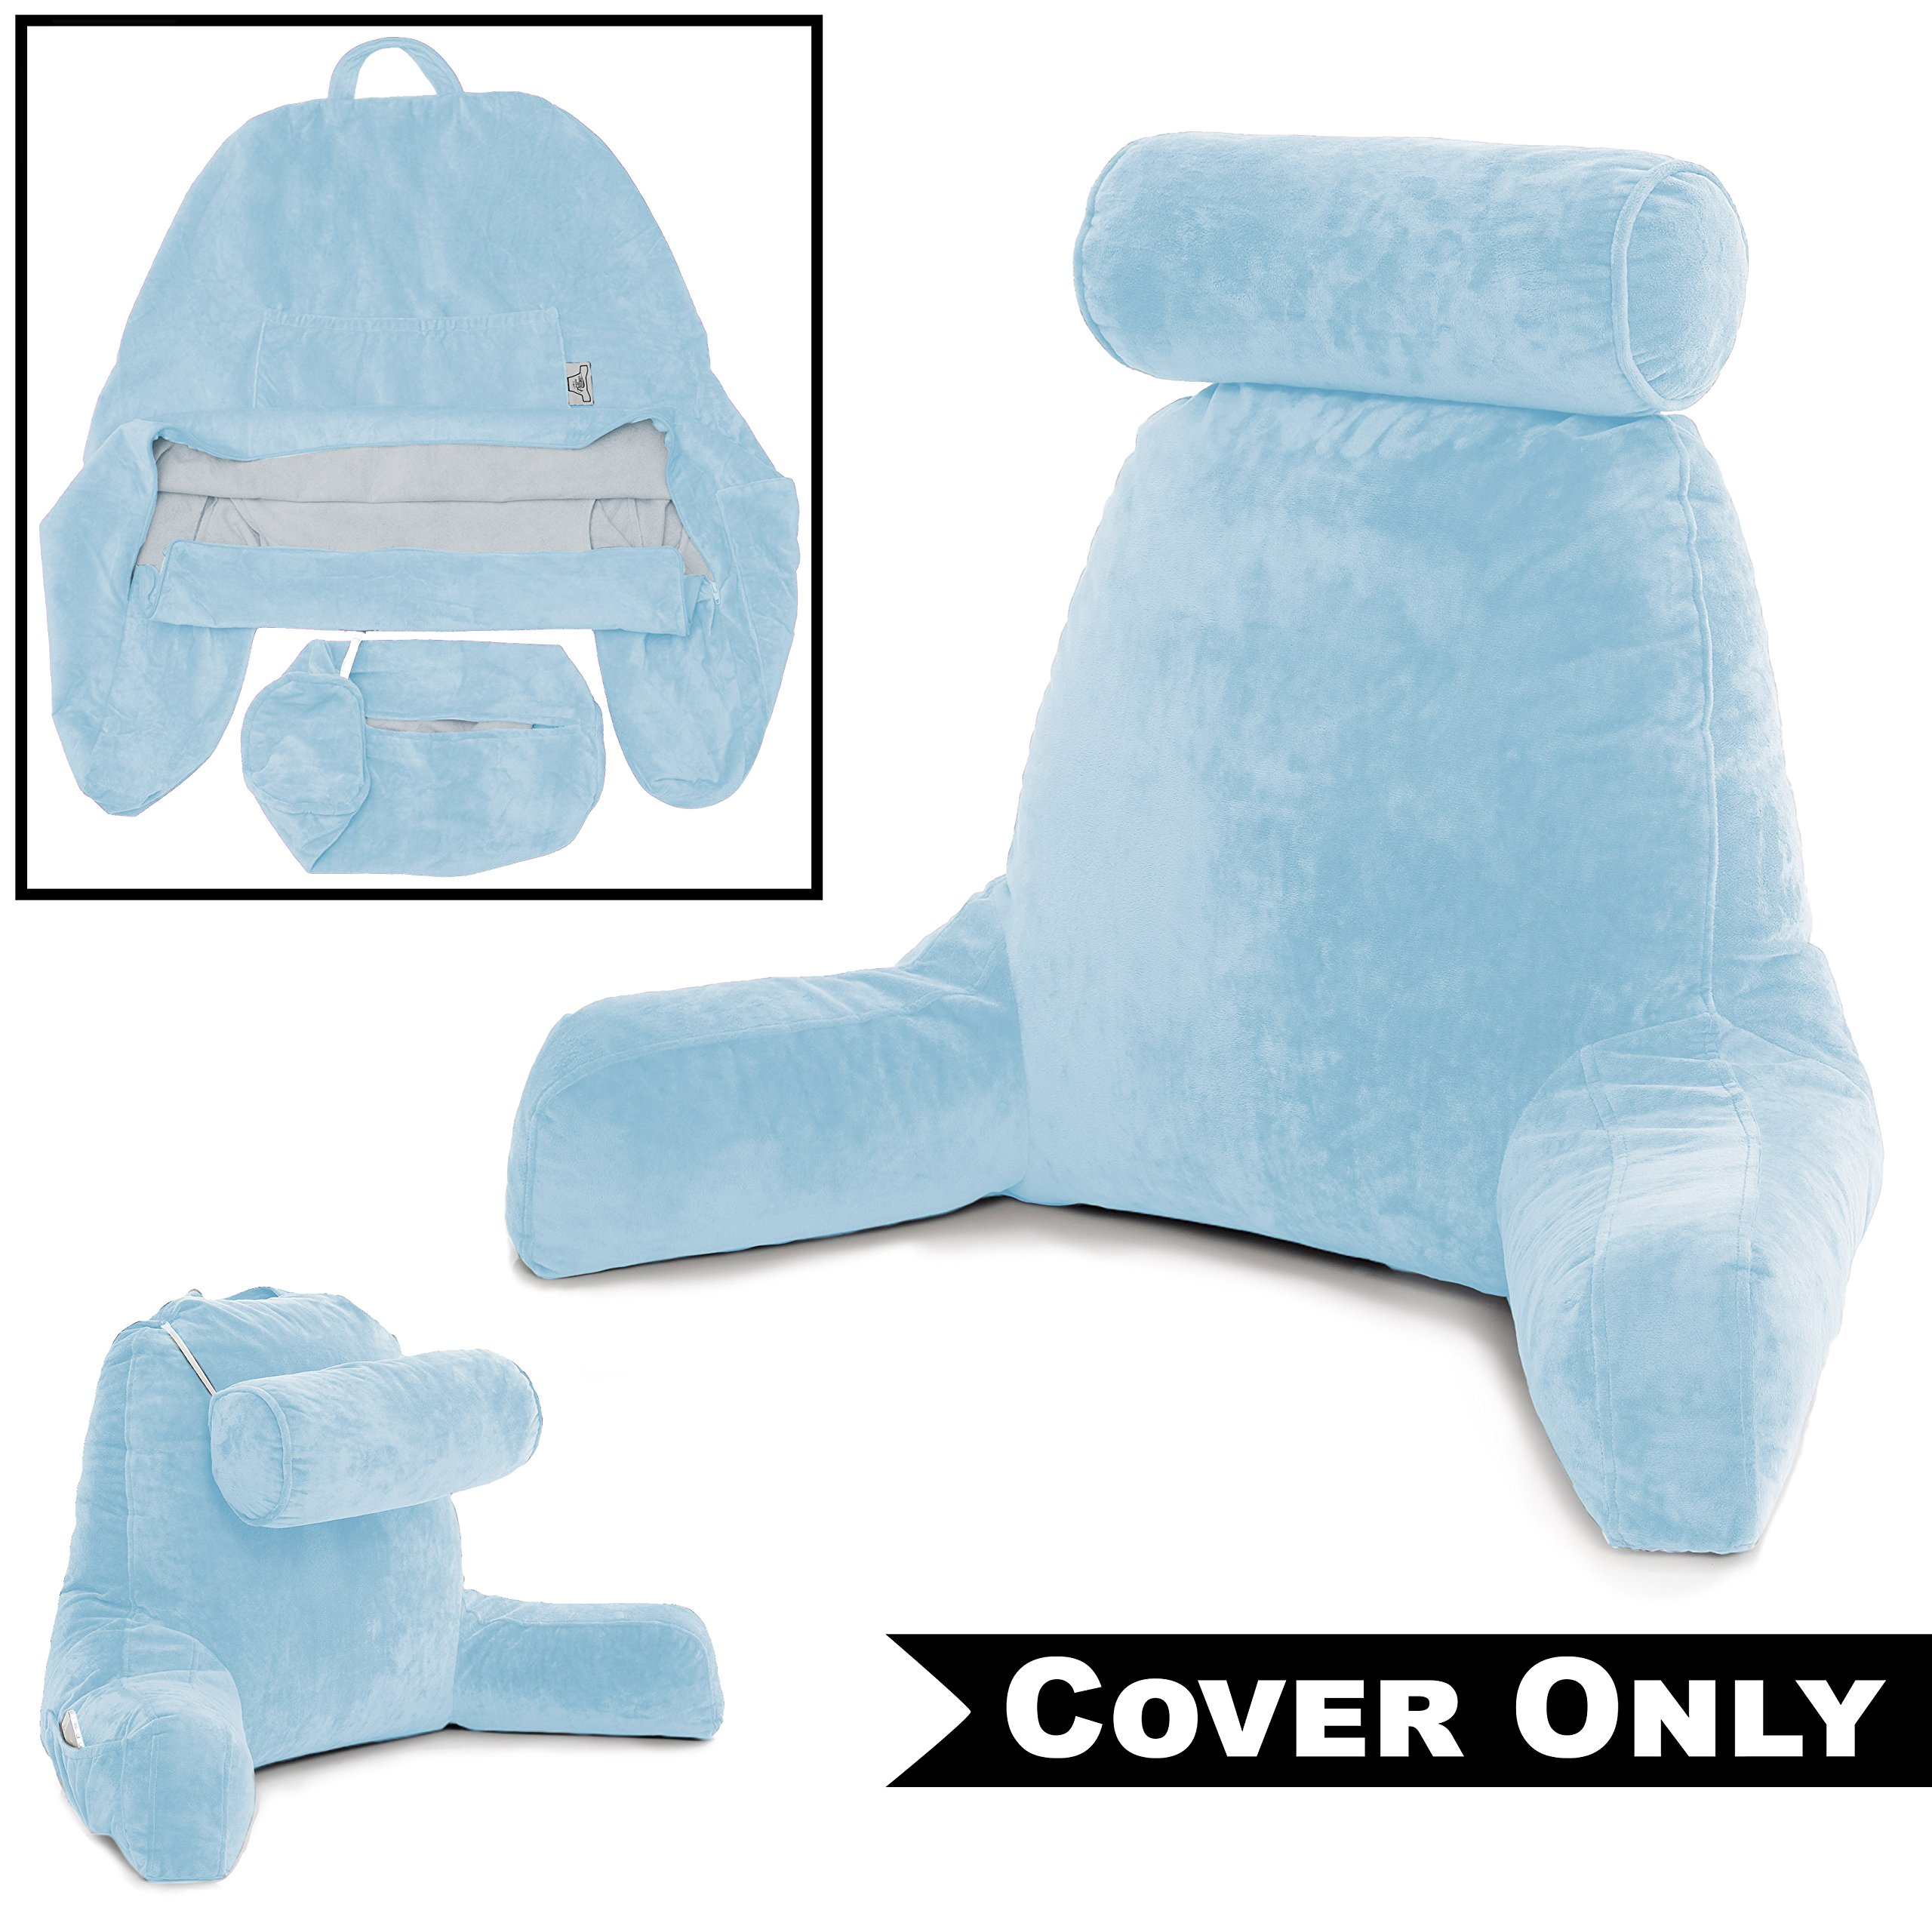 Husband Pillow Sky Blue COVER ONLY - For the Bedrest Cover Set - Support Bed Backrest Covers, Micro Plush Cover Including Detachable Neck Roll Pillow Cover